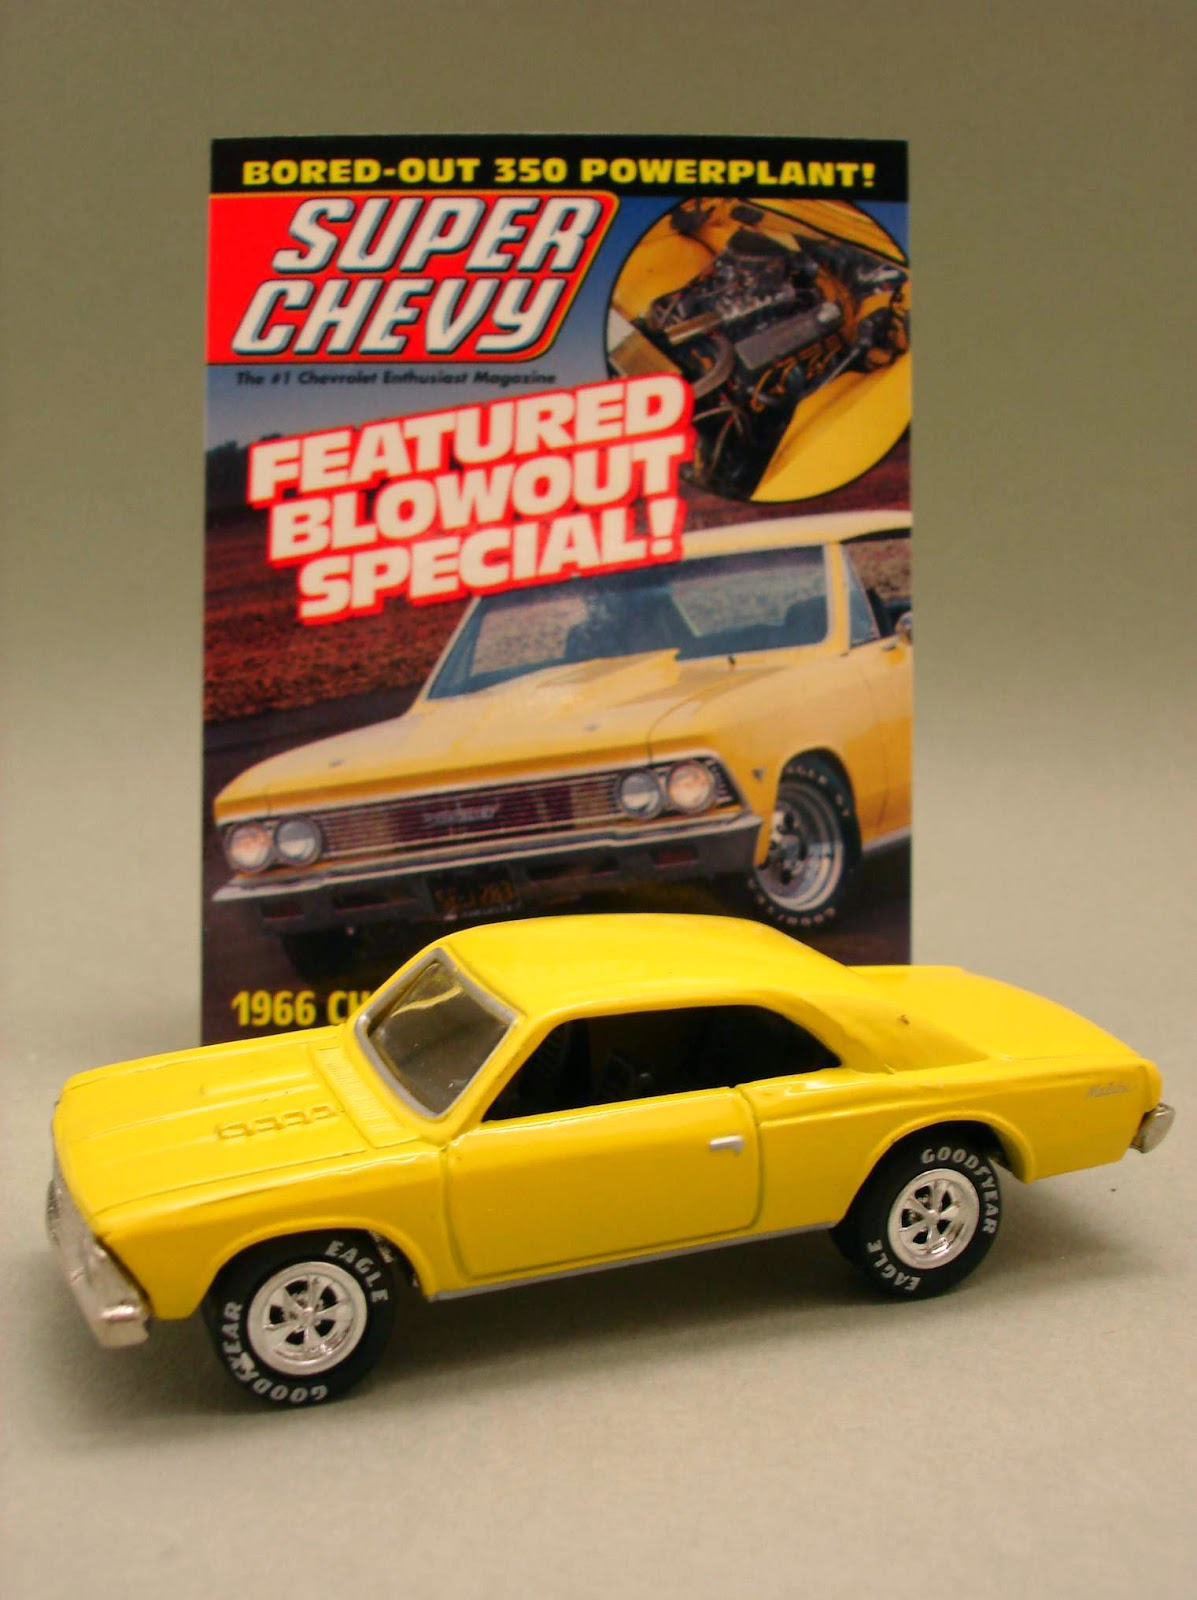 Diecast Hobbist 1966 Chevrolet Malibu Chevy Cheyenne Super 4x4 164 Scale From Johnny Lightning Cover Cars Release 3